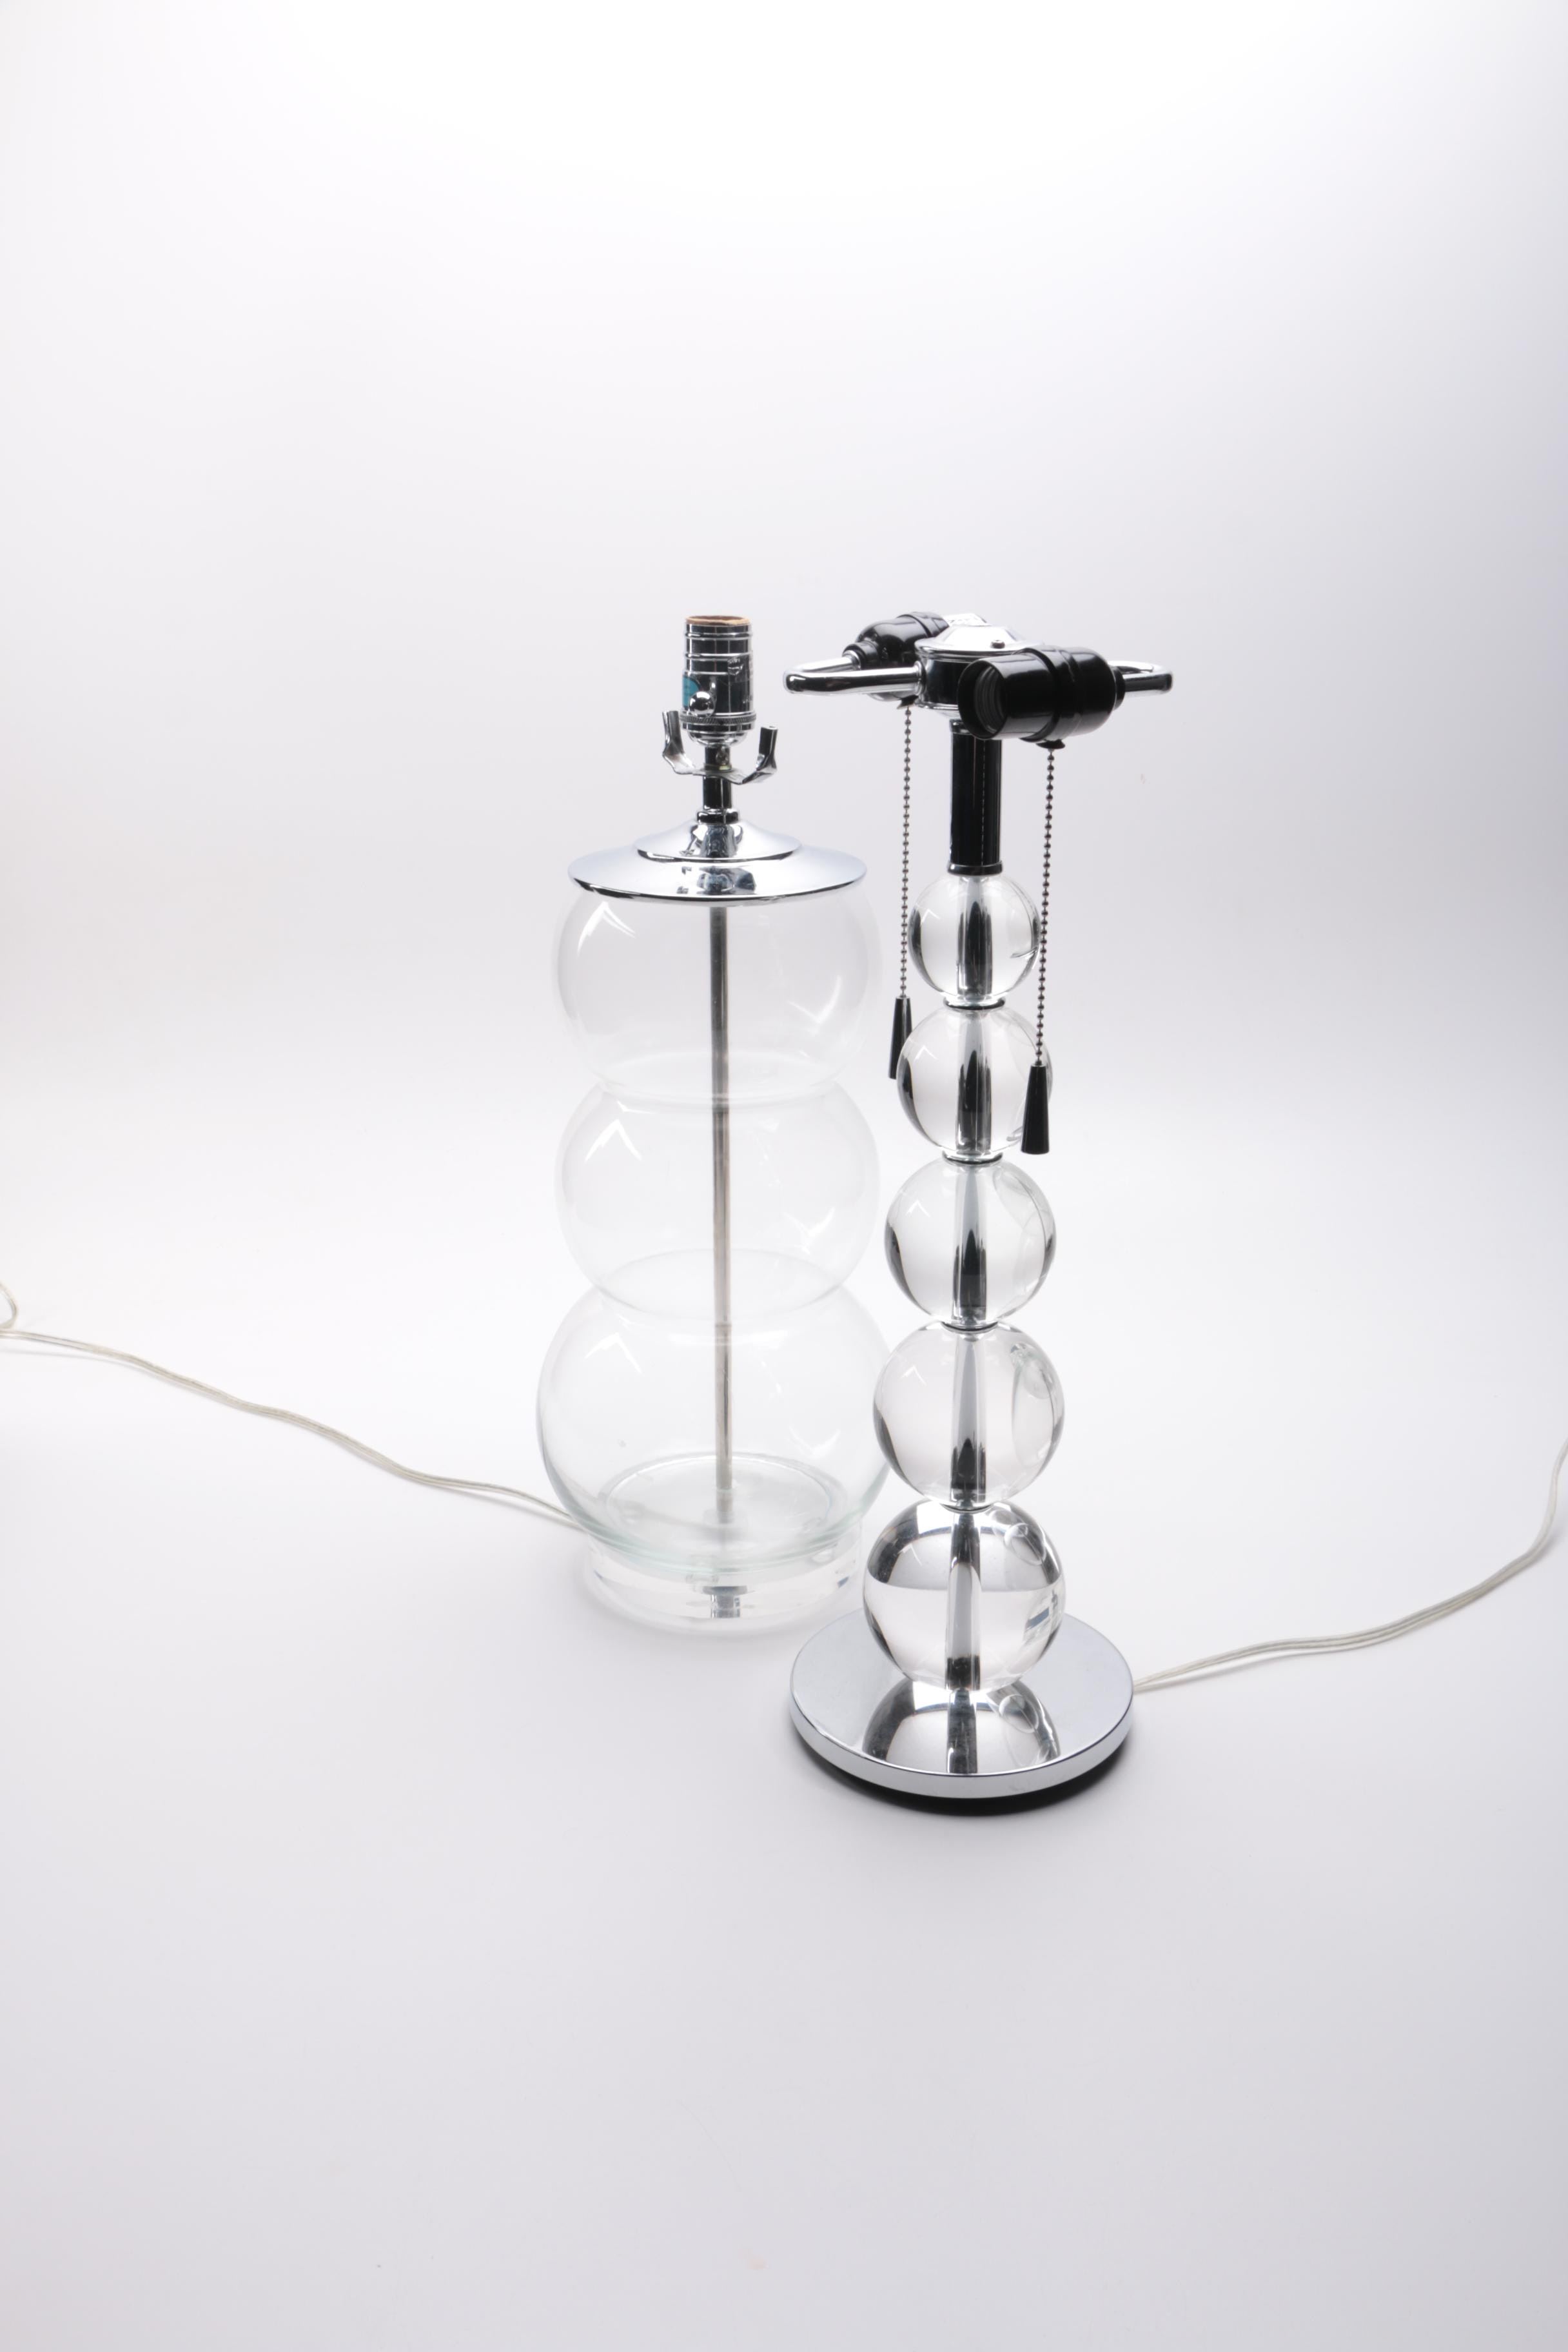 Orb Style Glass Table Lamps